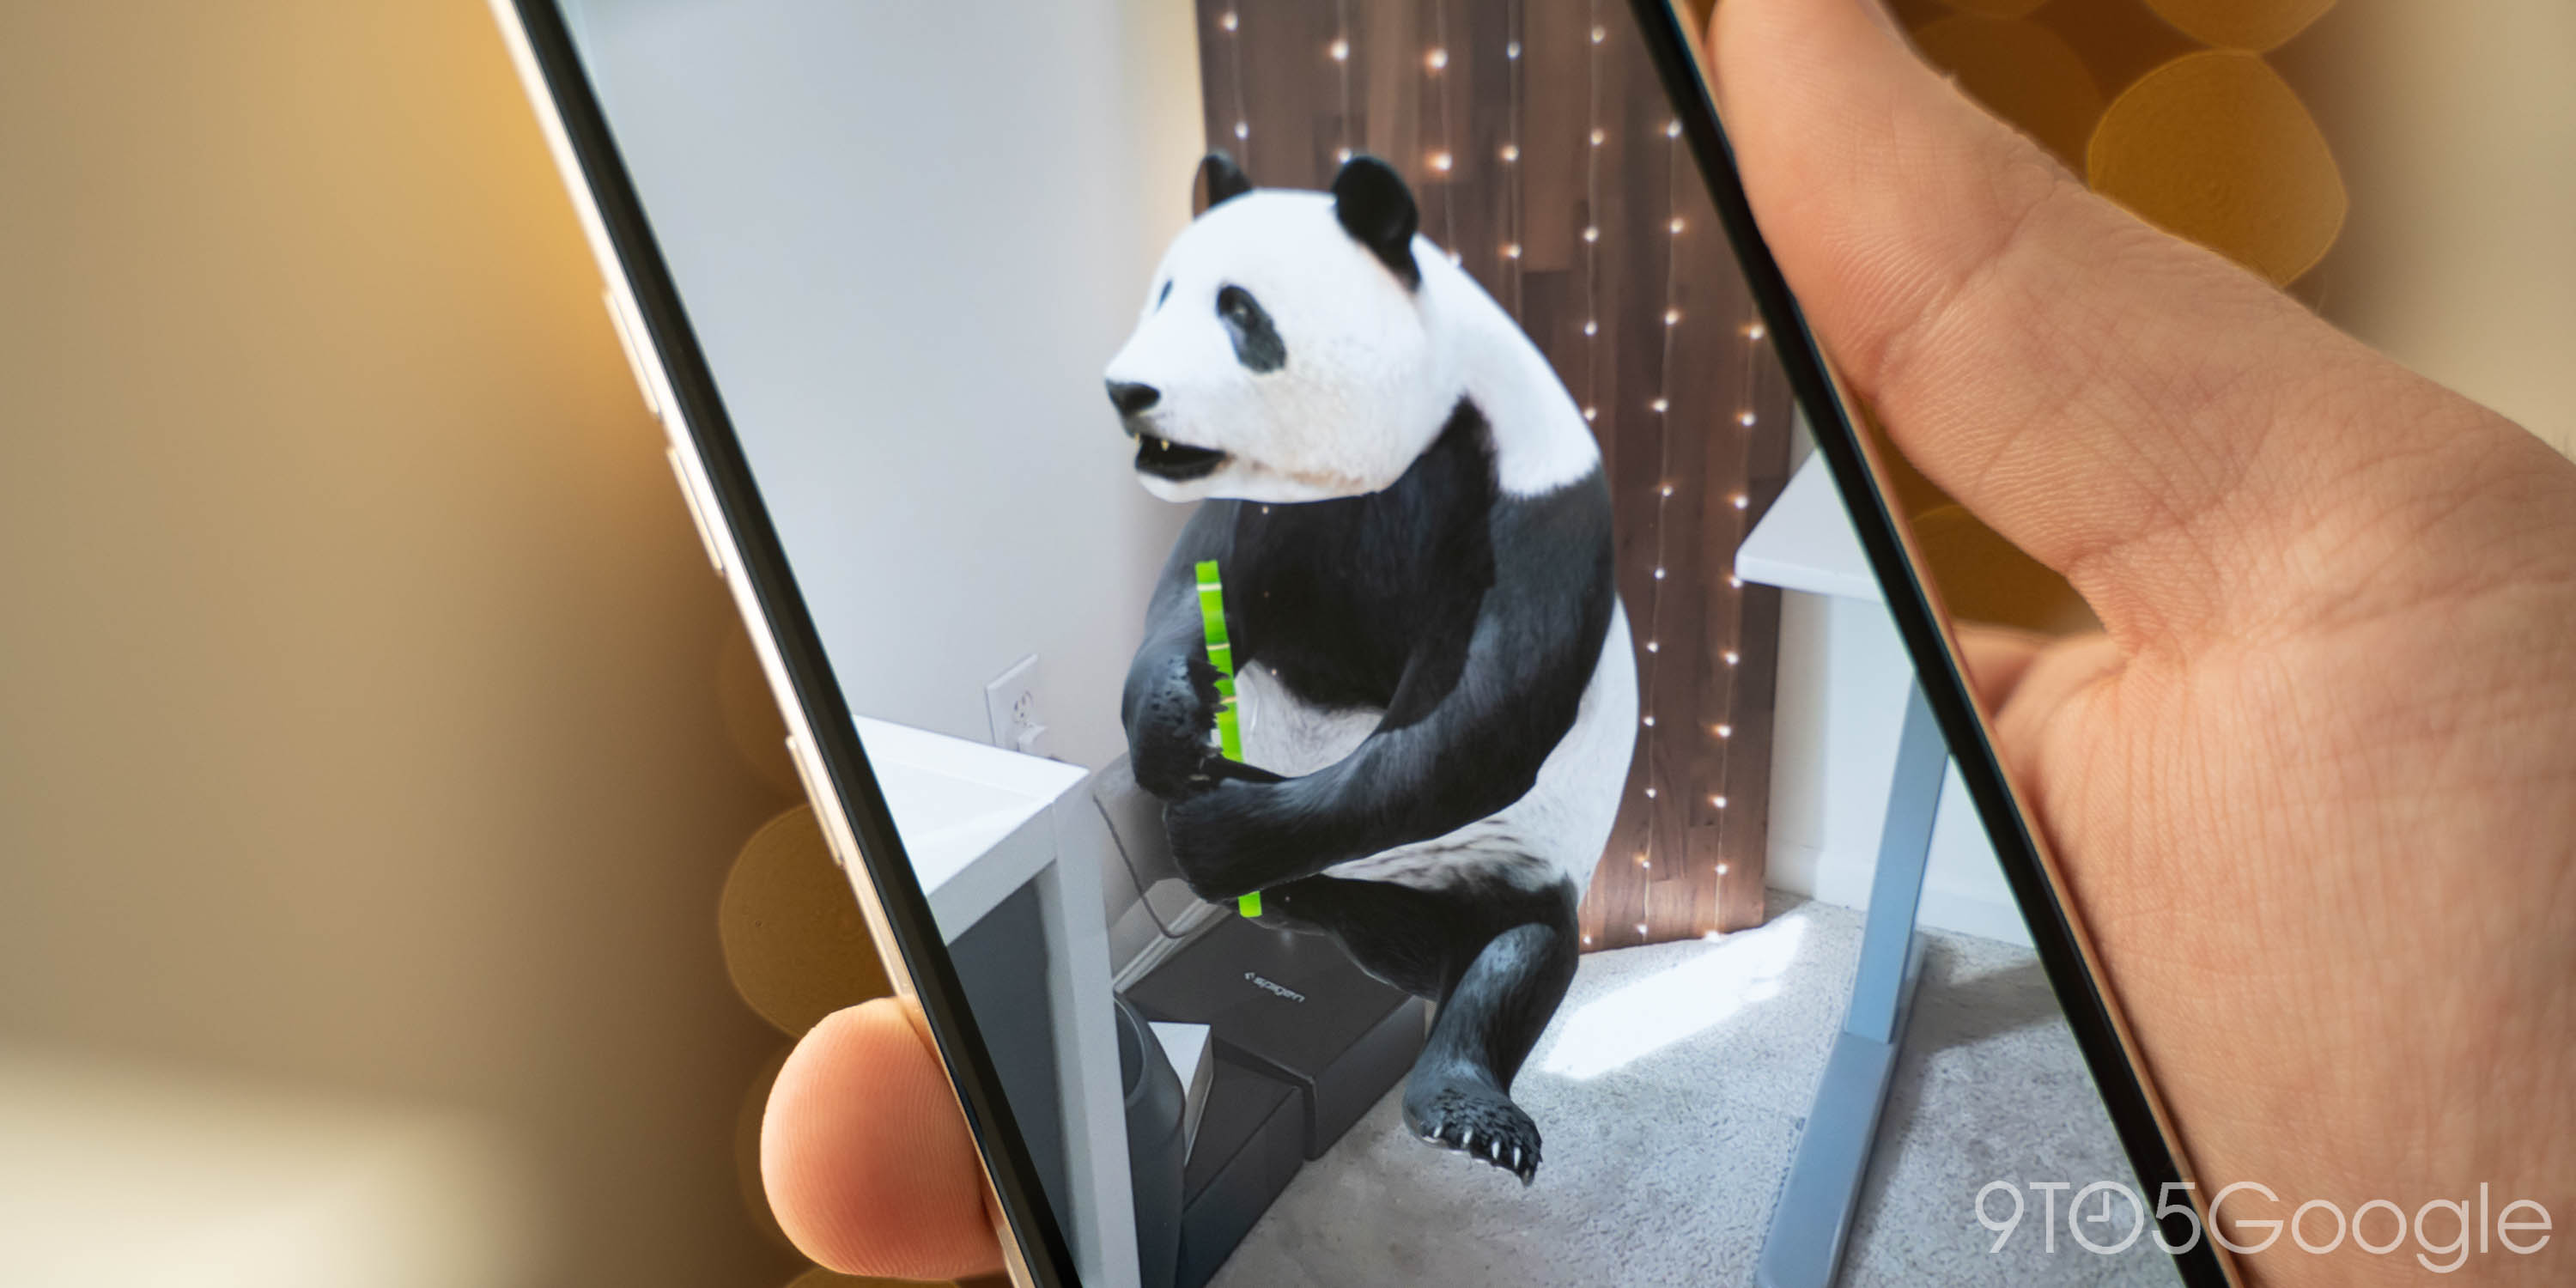 What Android phones support 'view in your space' for Google 3D animals